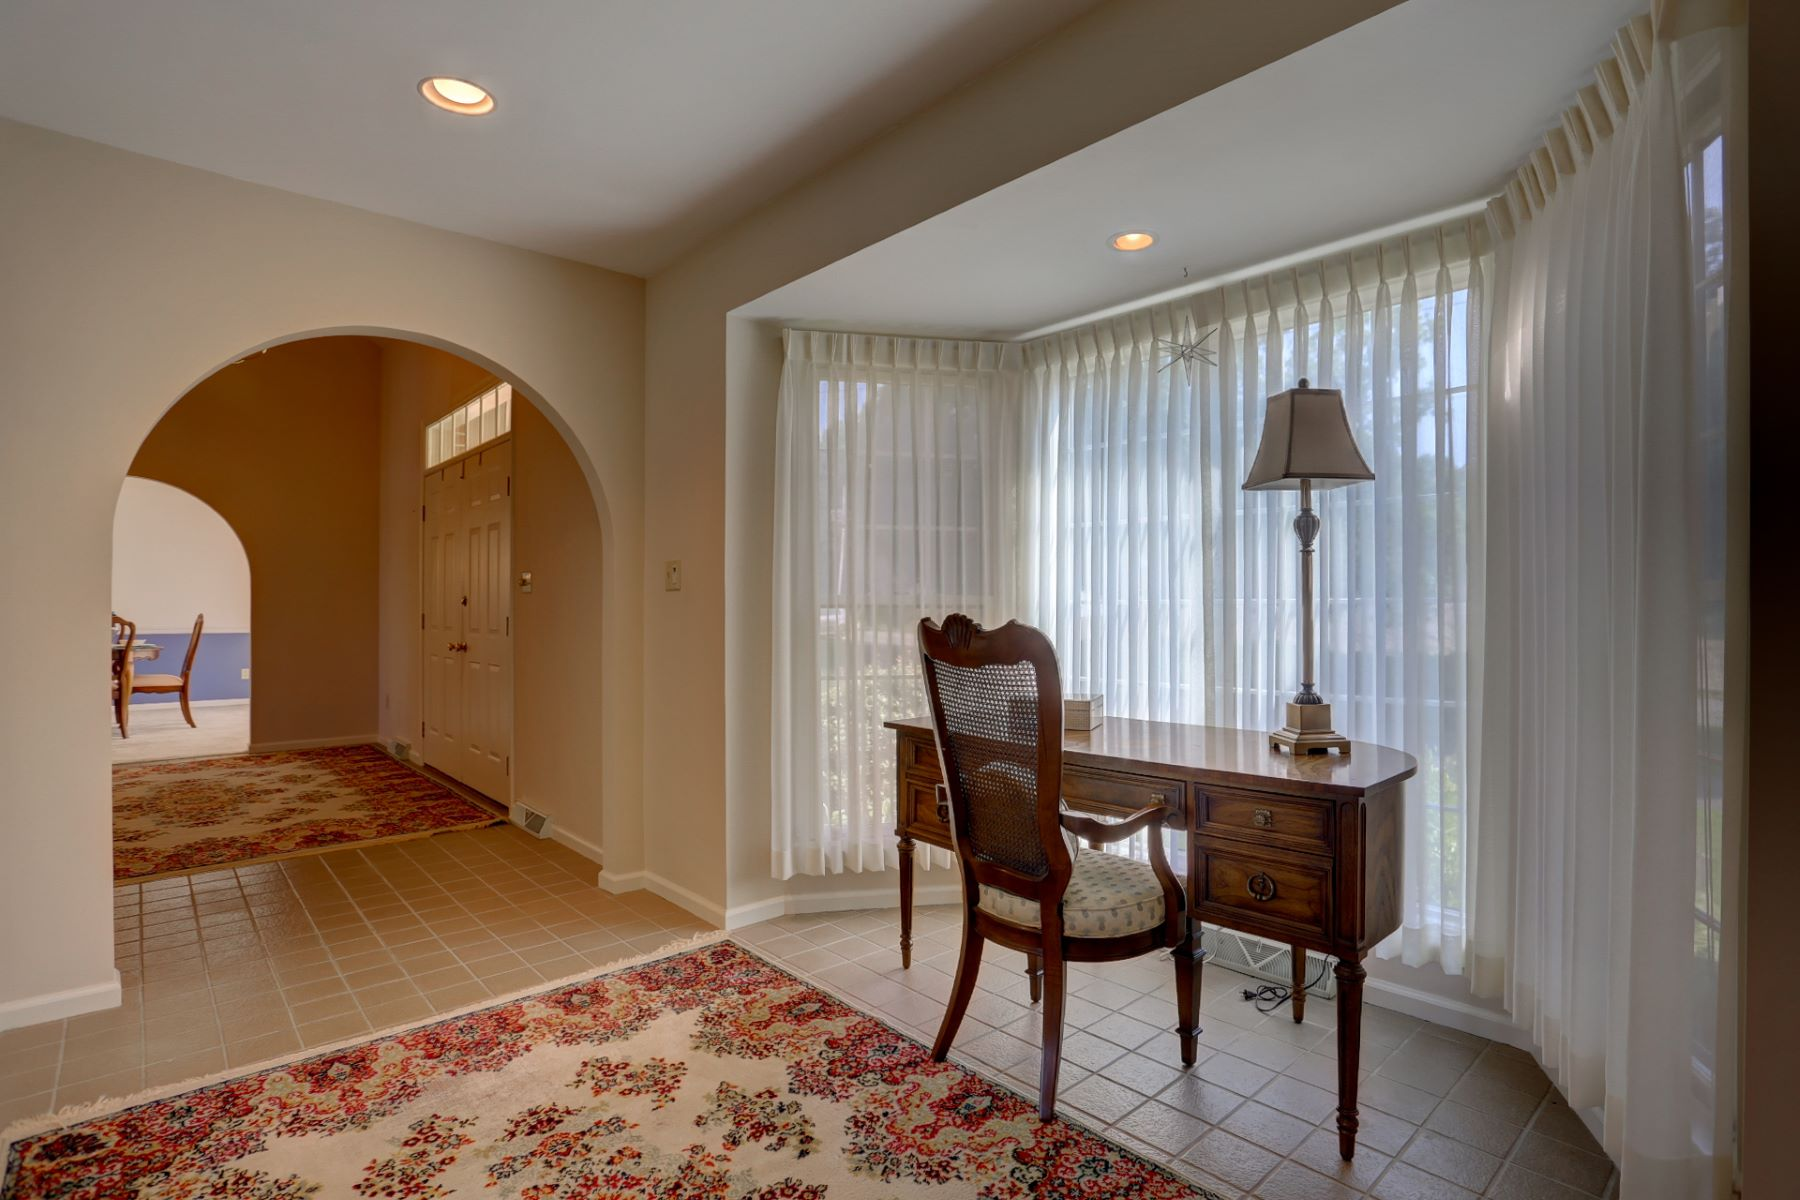 Additional photo for property listing at 398 West Woods Drive  Lititz, Pennsylvania 17543 Estados Unidos